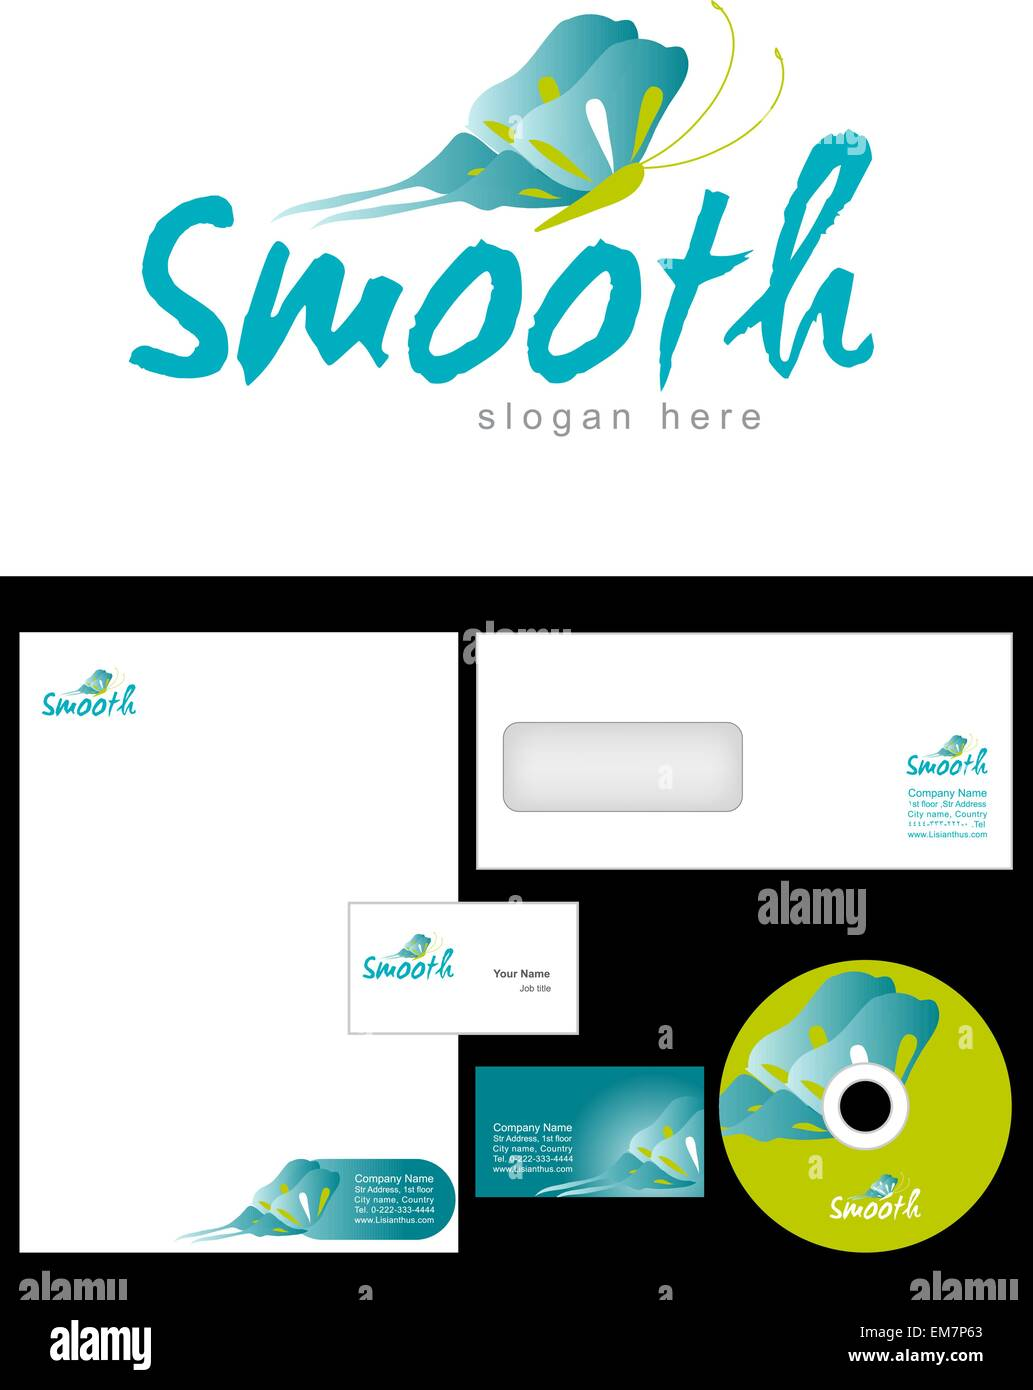 Smooth Logo Design and corporate identity package including logo ...